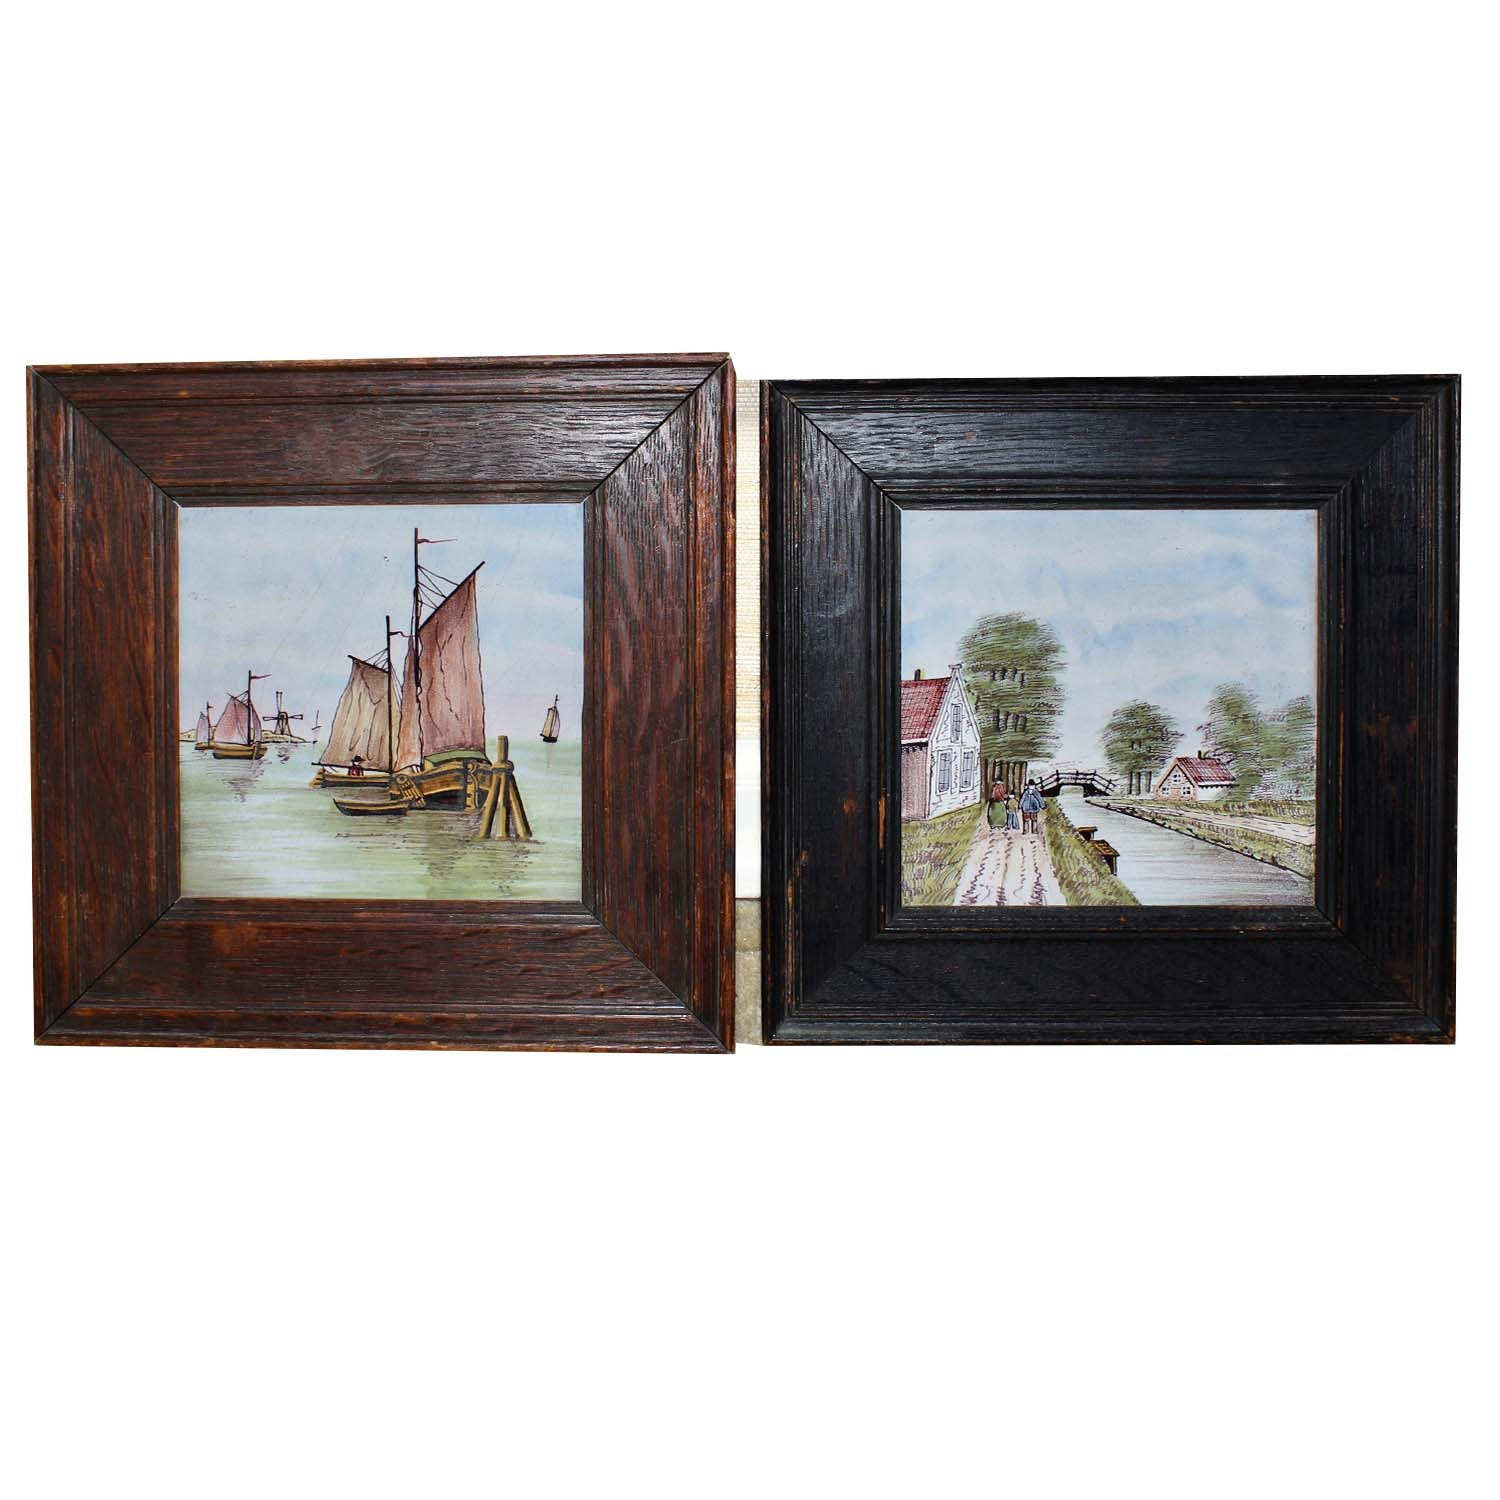 Two Framed Hand Painted Ceramic Tiles